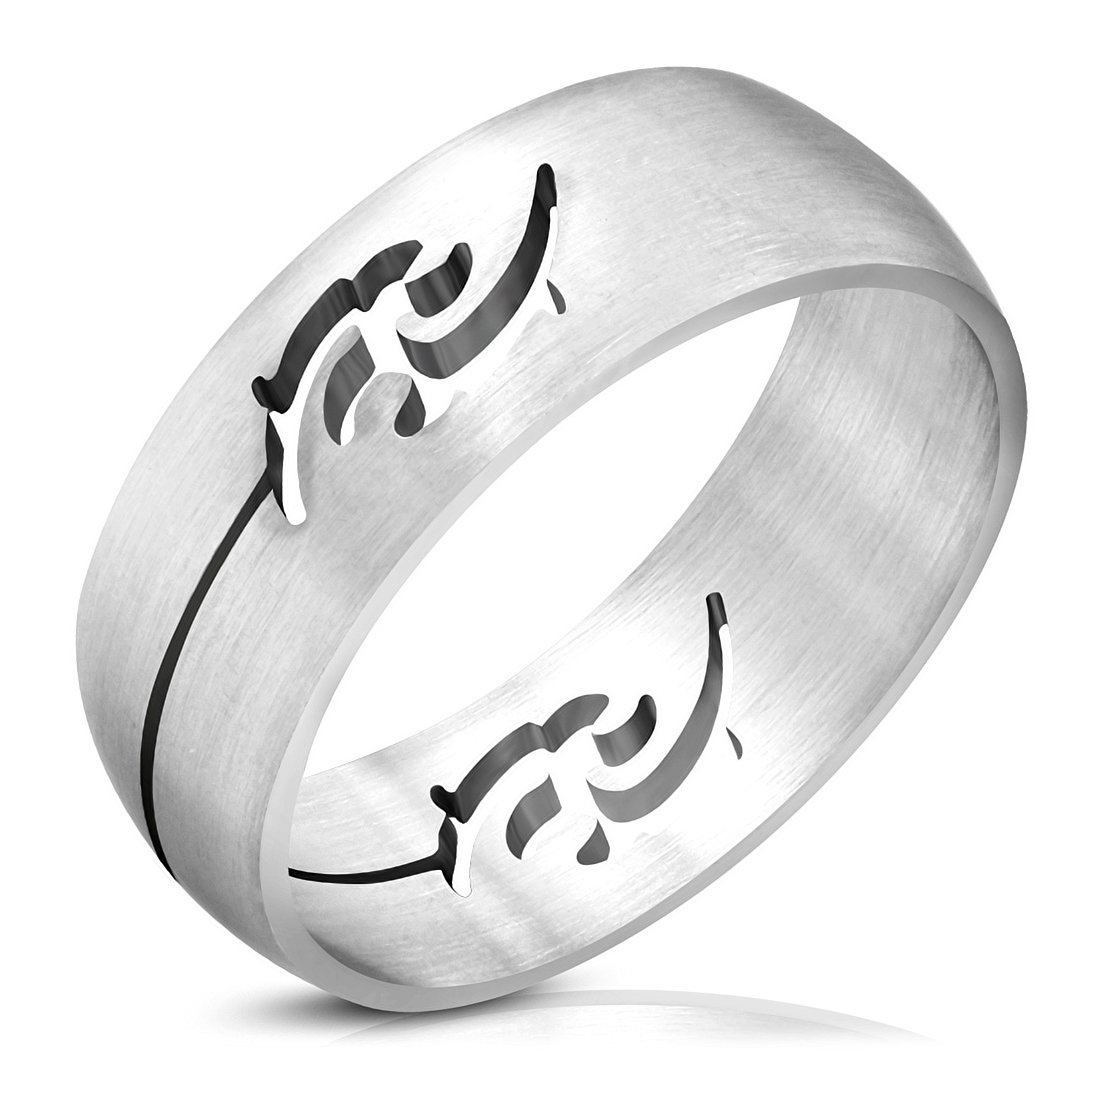 Stainless Steel Matte Finished Cut-out Tribal Half-Round Band Ring